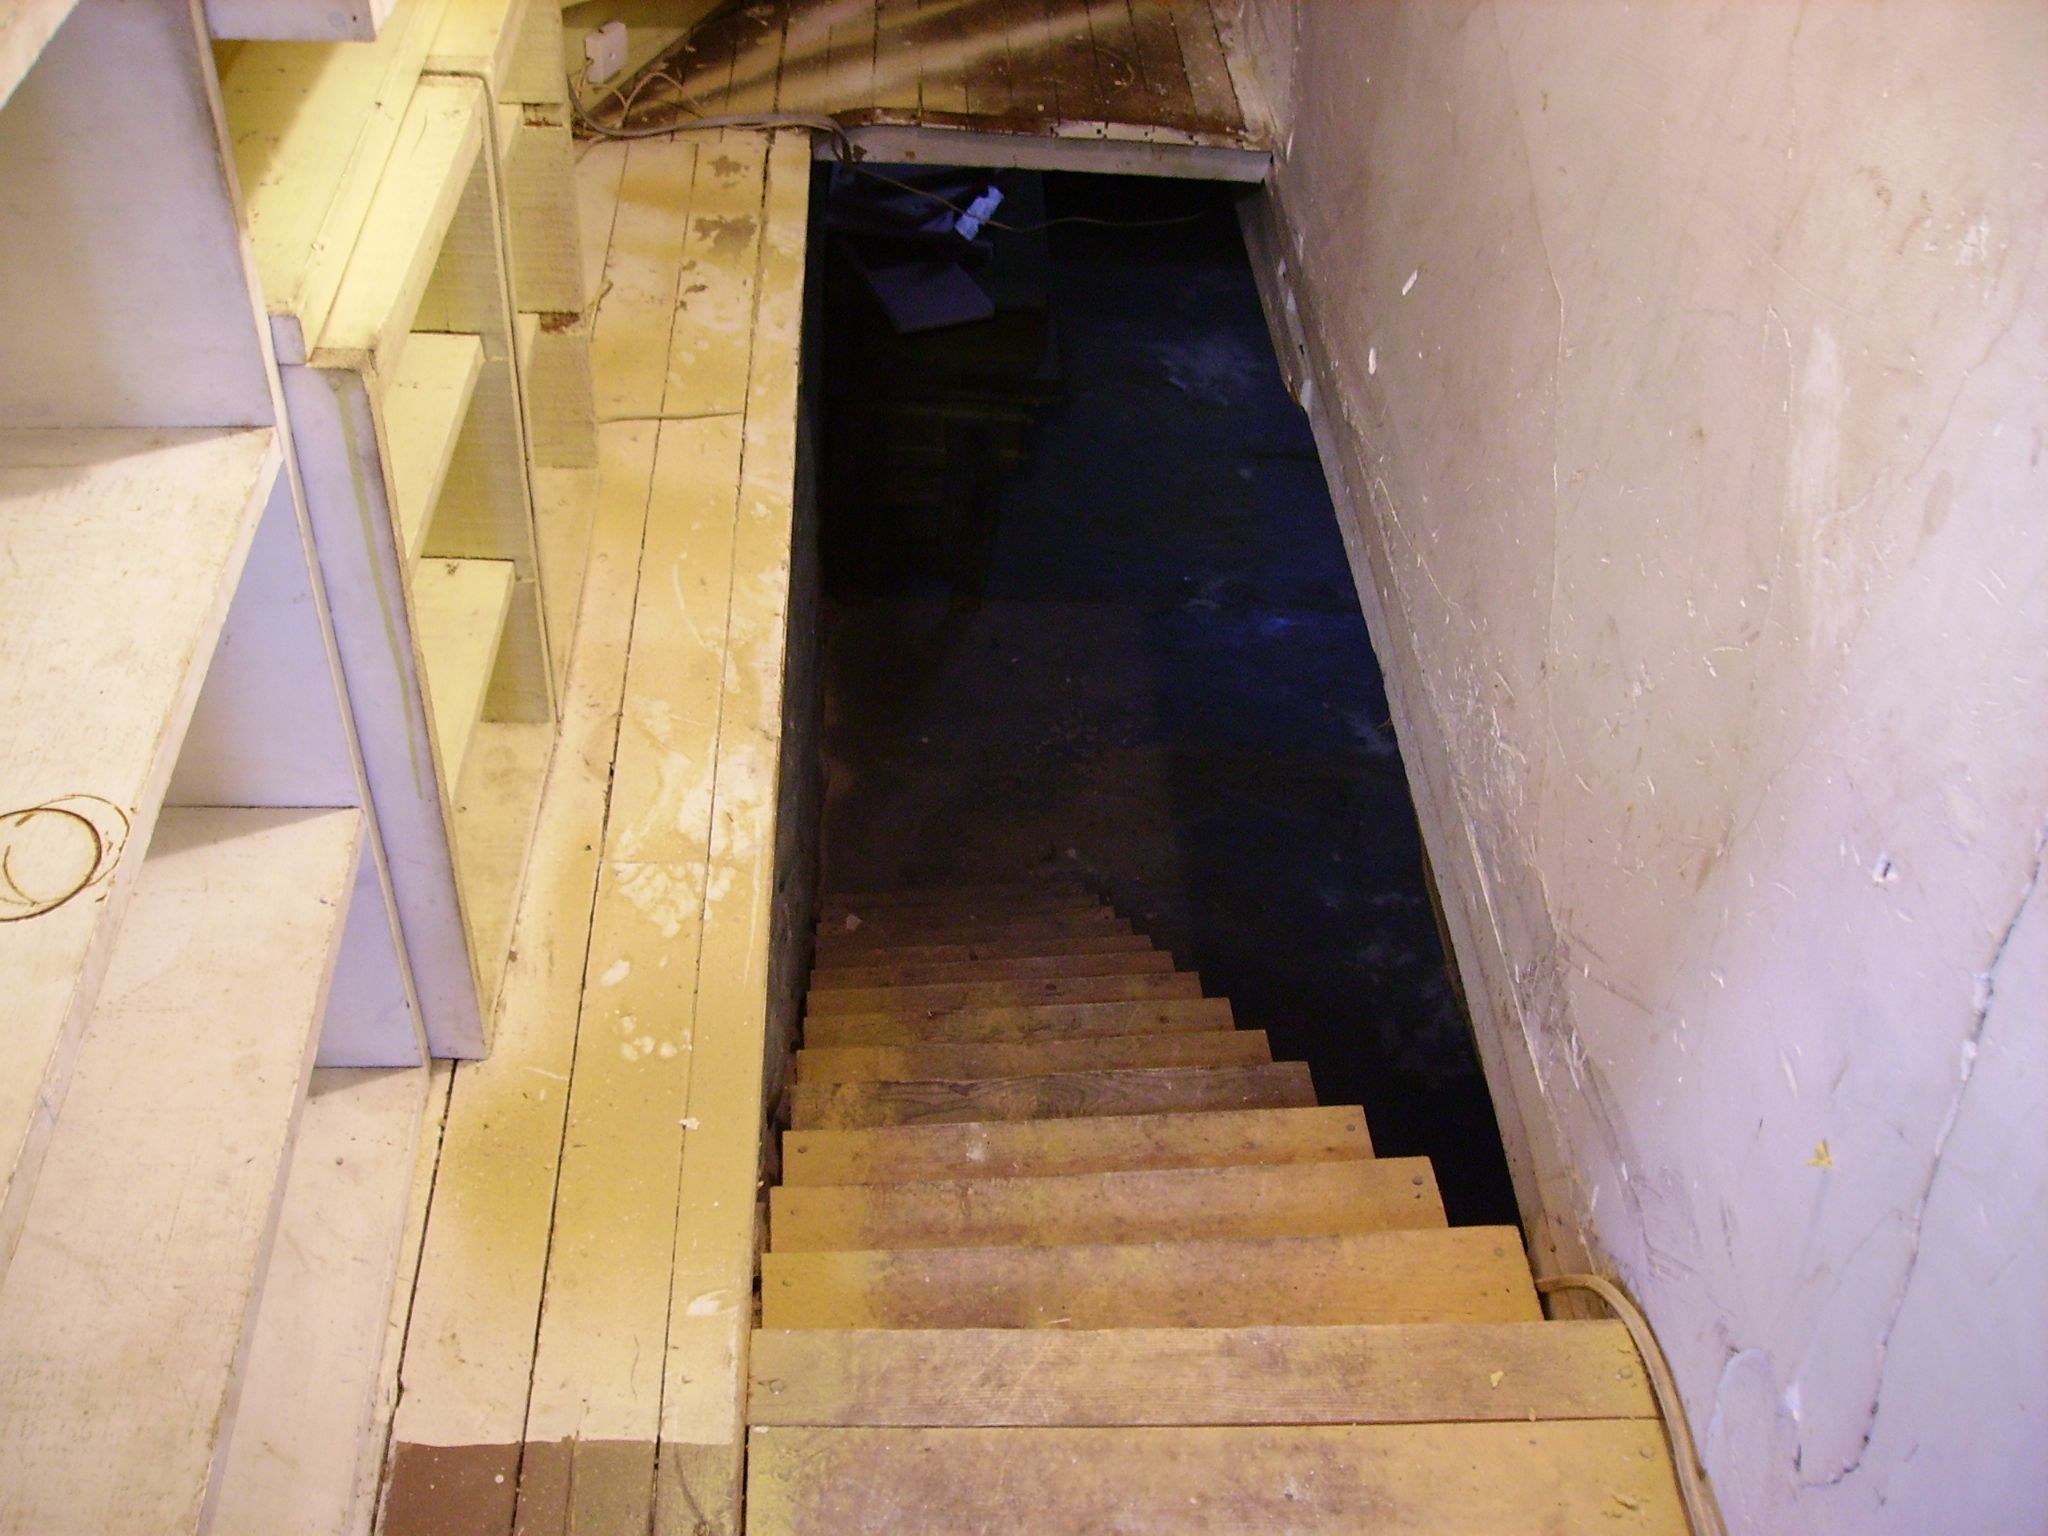 Beau Michigan Farmhouse Reno: Stairs Going Down To The Basement...scary!